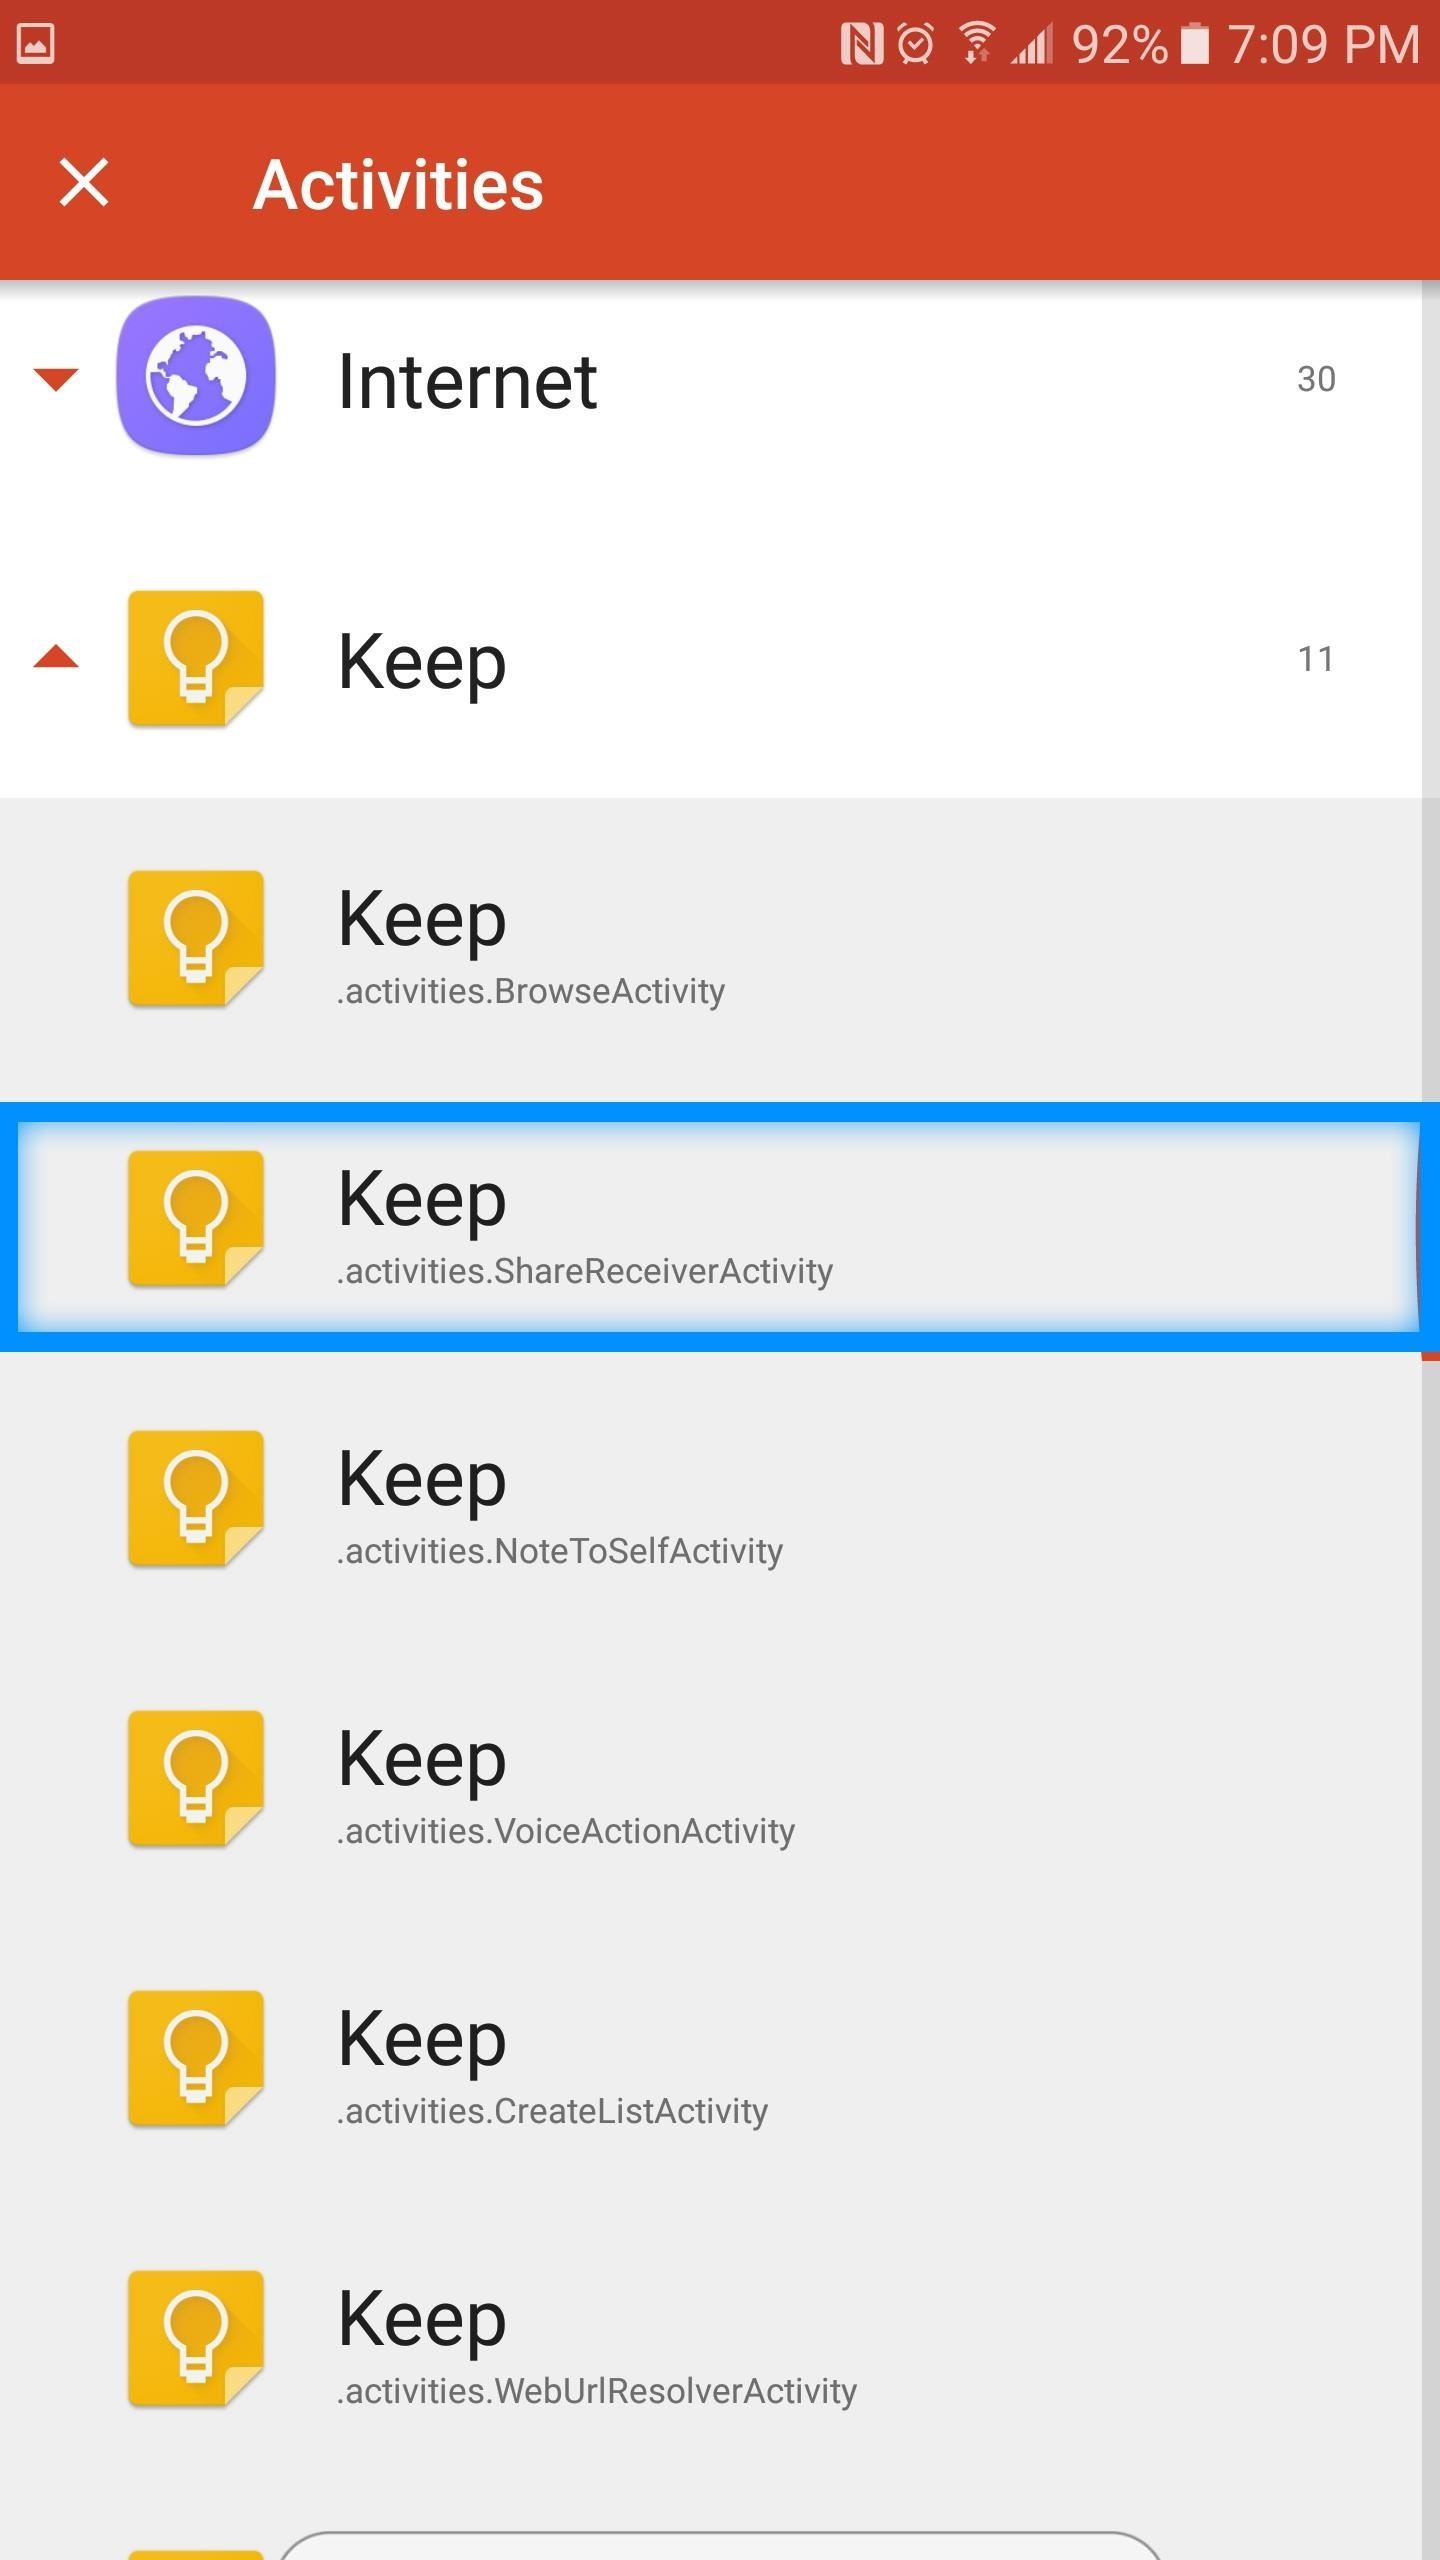 10 Must-Know Tips for Better Note-Taking with Google Keep « Android ...: android.wonderhowto.com/how-to/10-must-know-tips-for-better-note...